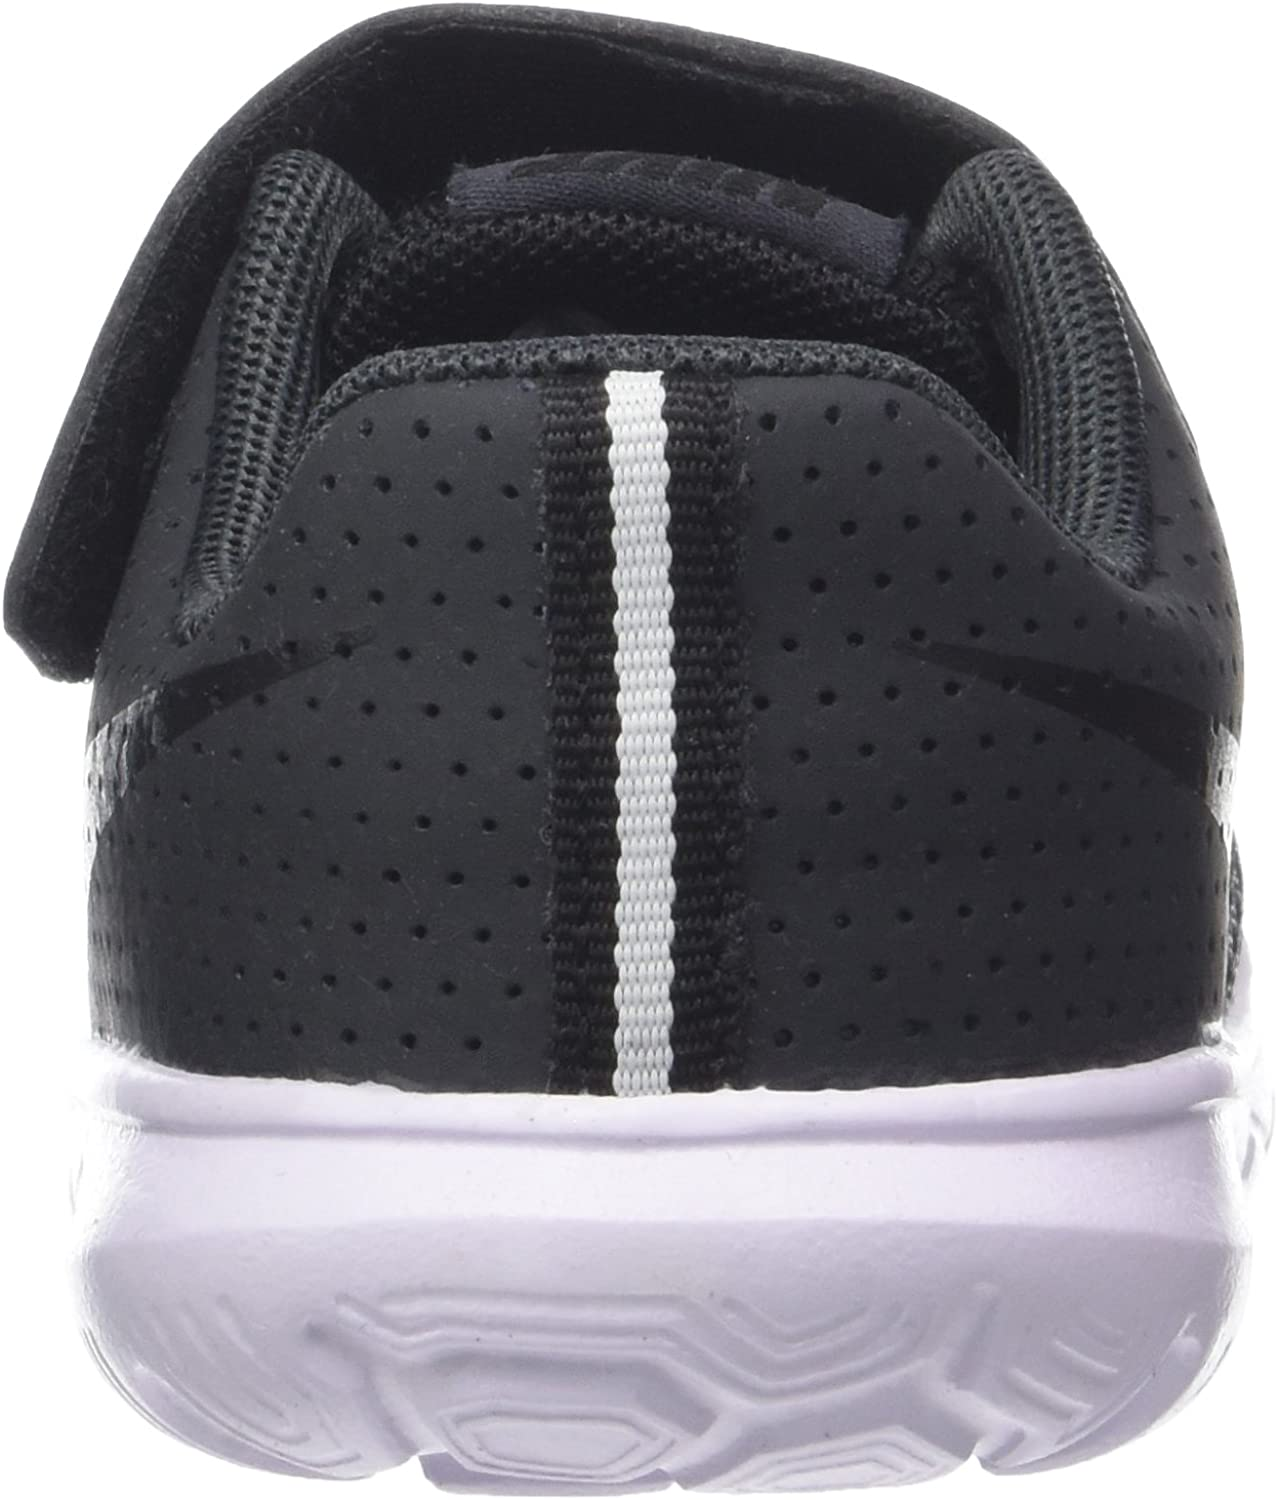 Nike Boys Flex Experience 5 PSV Running Shoes 3 Little Kid M, Black//Black-Anthracite-White